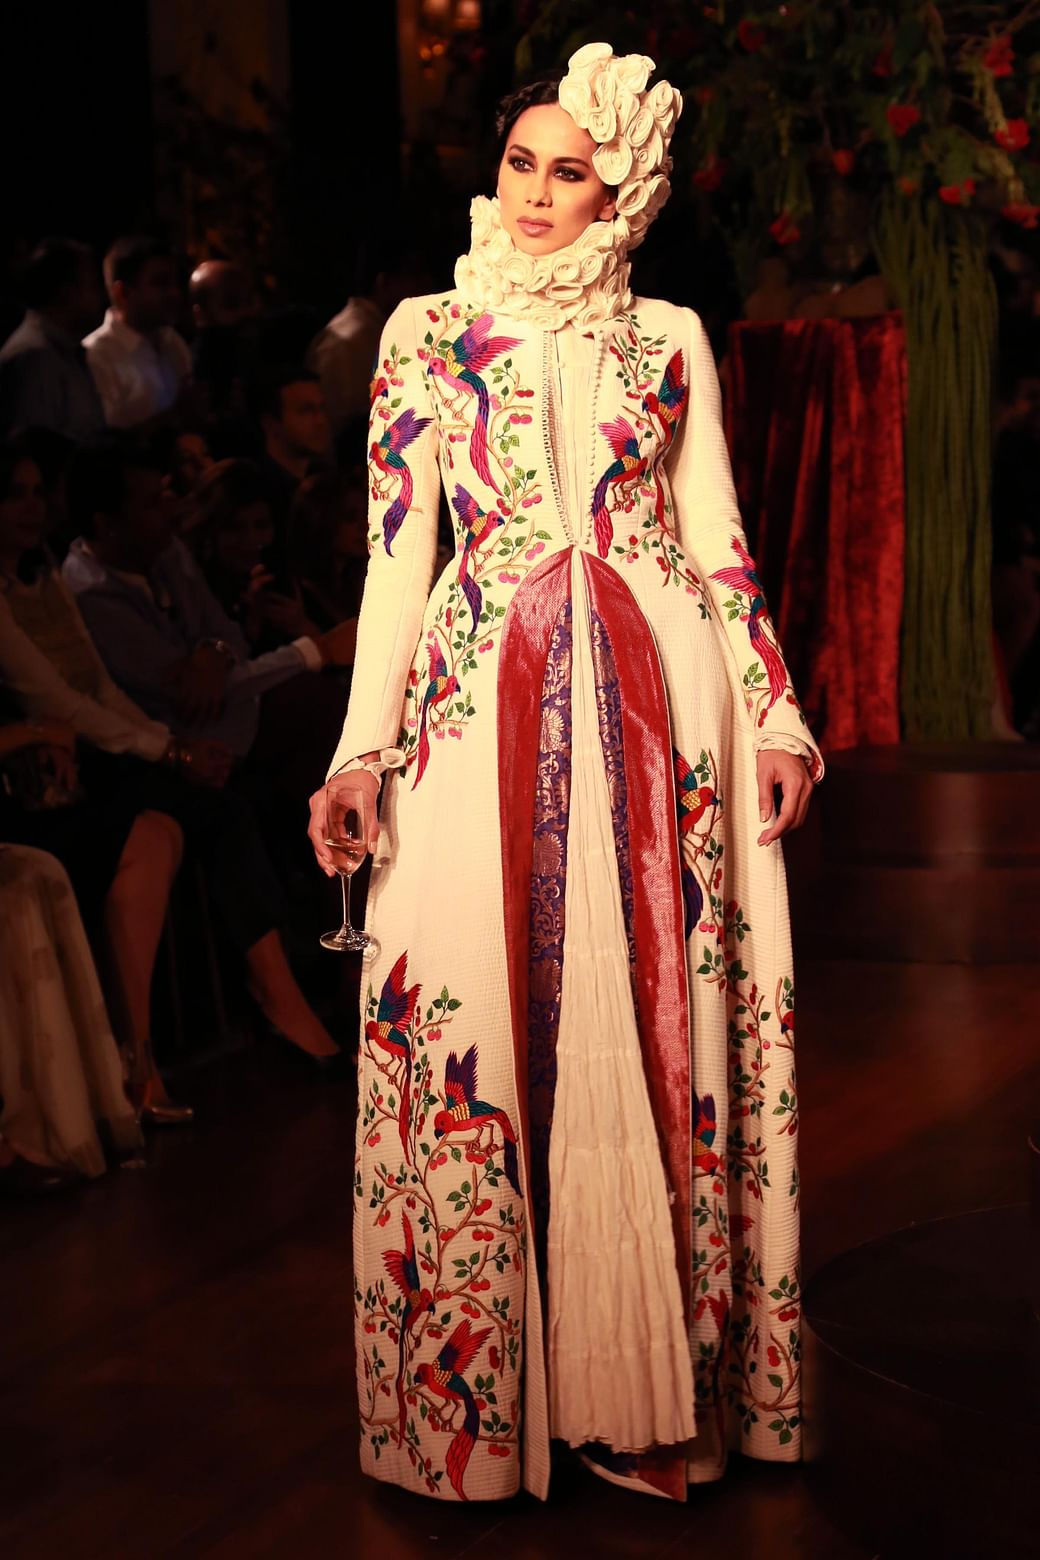 Designer Rohit Bal Says The Fun Has Gone From The Fashion Industry